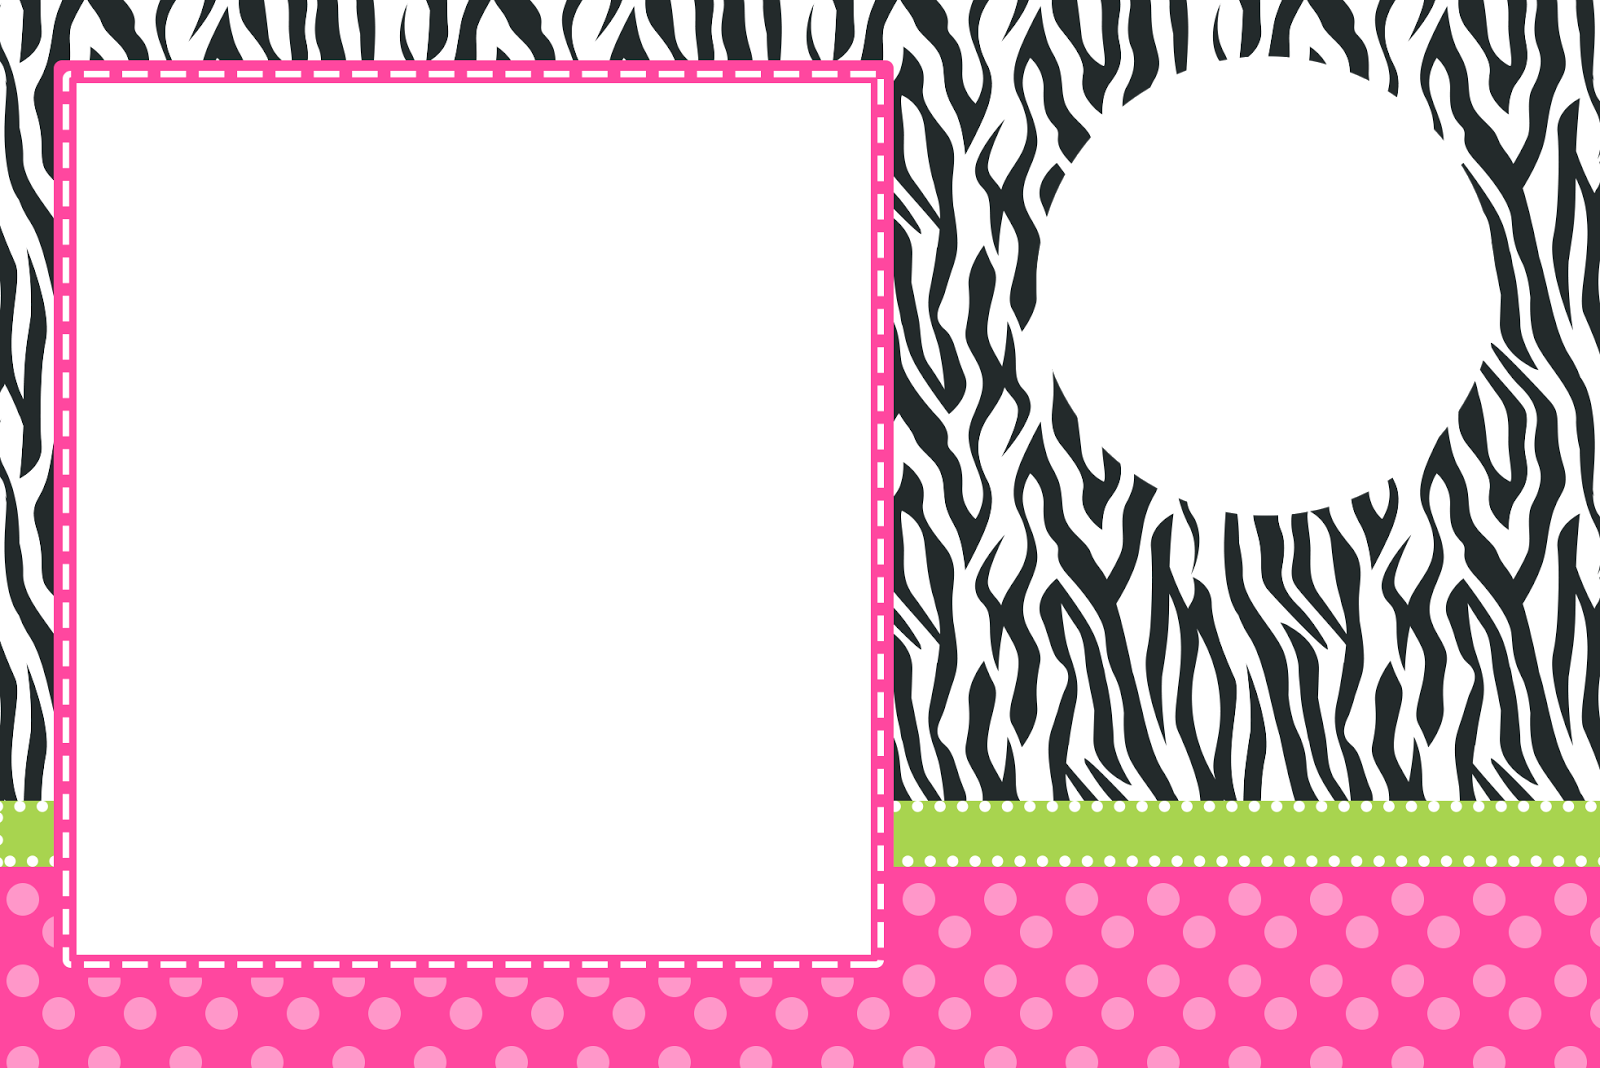 Animal Print Wallpaper Border Cebra Y Rosa Invitaciones Para Imprimir Gratis Oh My